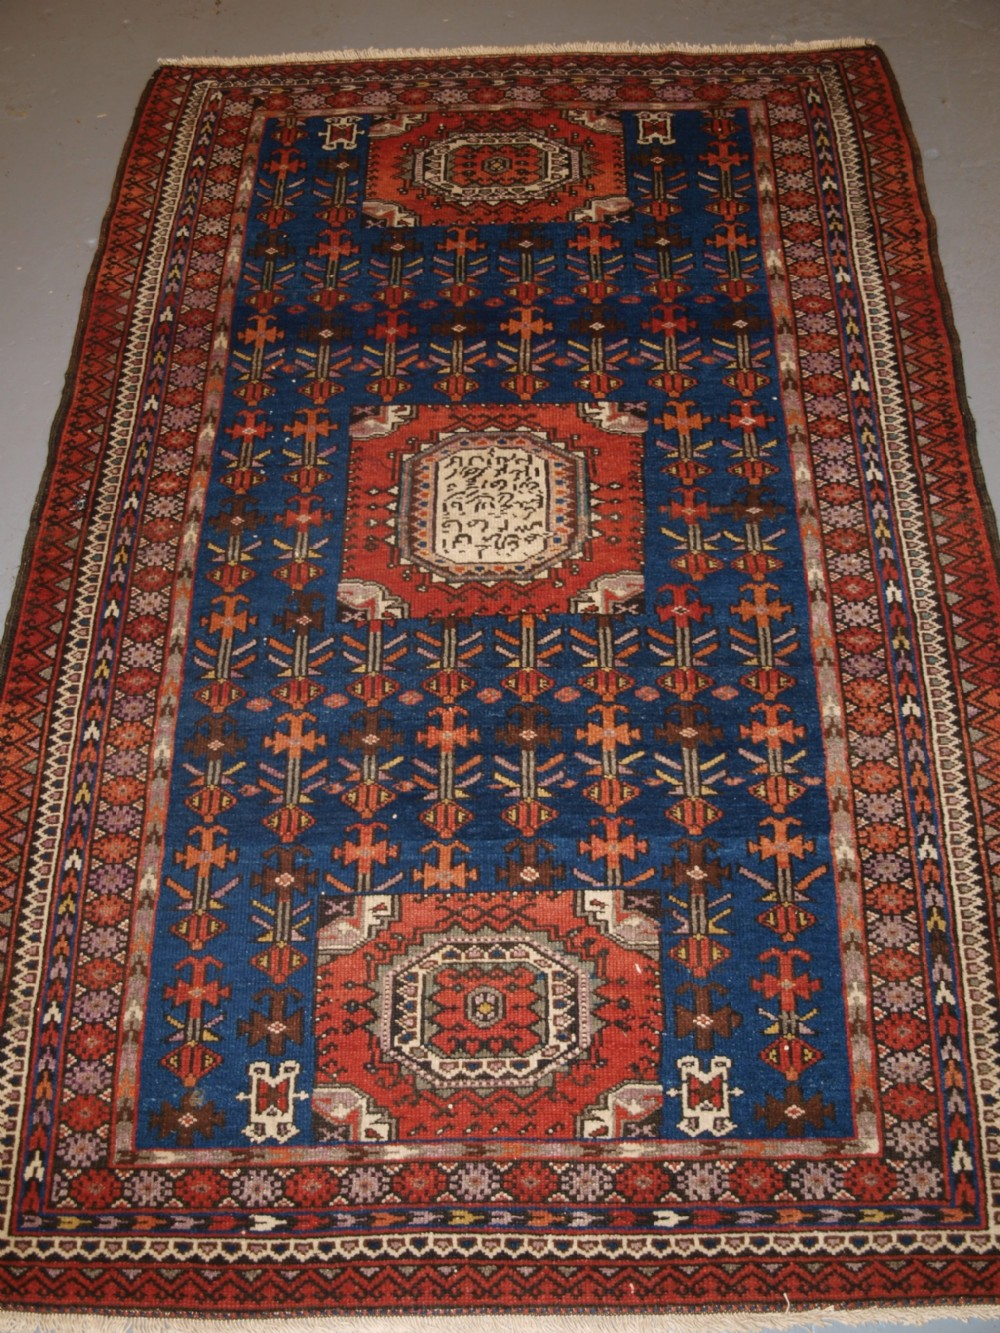 old north west persian kurdish rug unusual design large inscription with date circa 190020